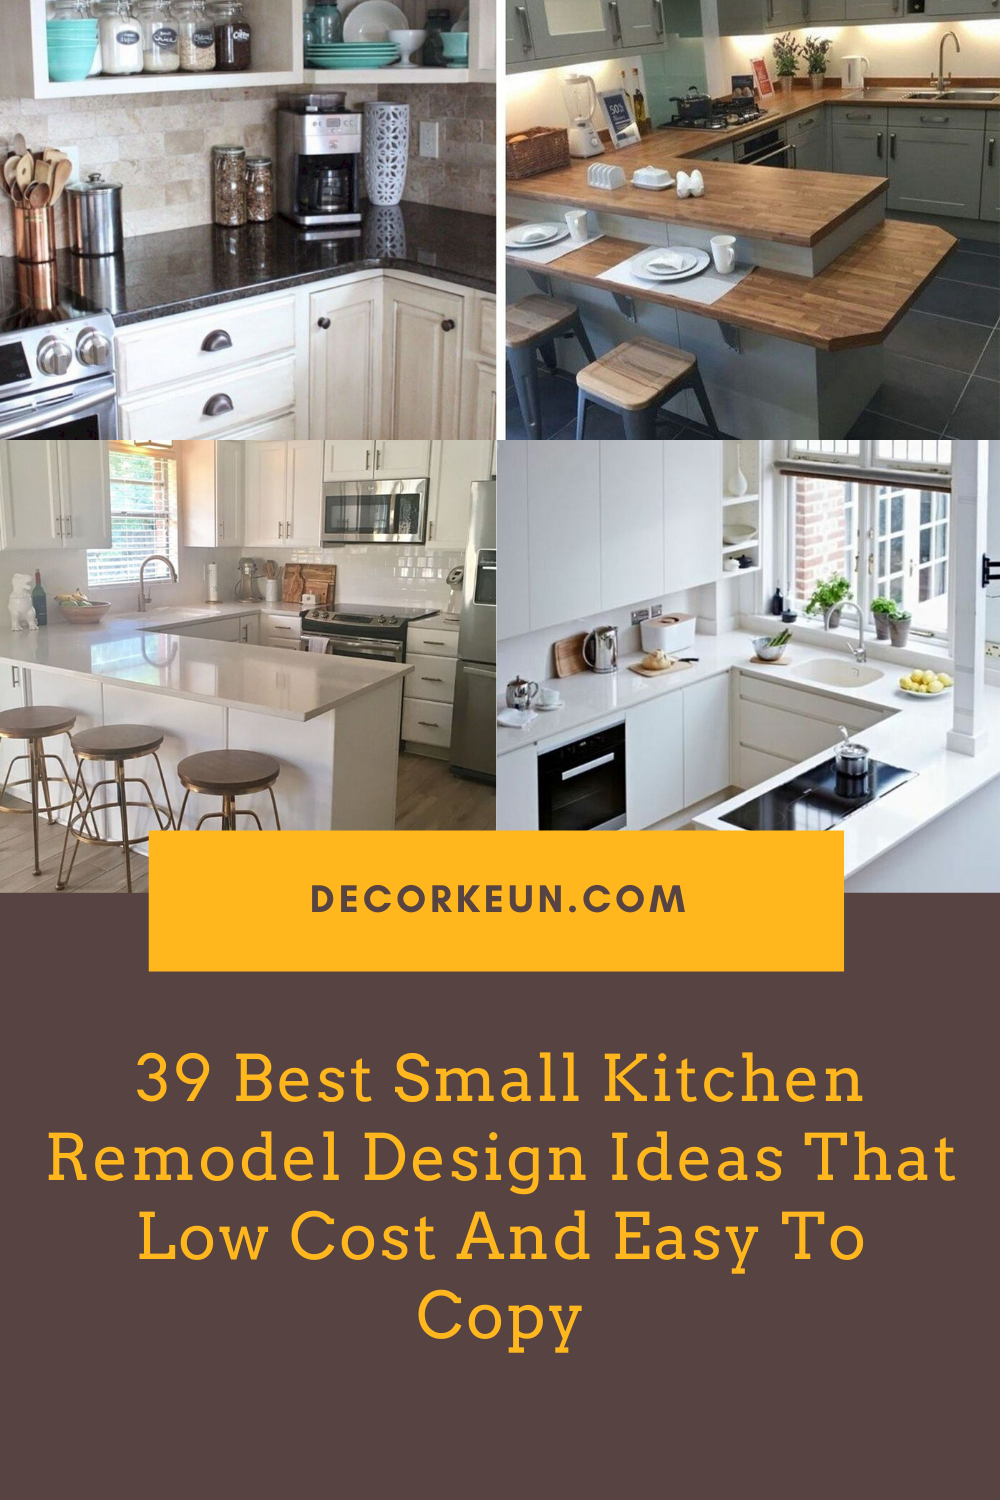 39 Best Small Kitchen Remodel Design Ideas That Low Cost